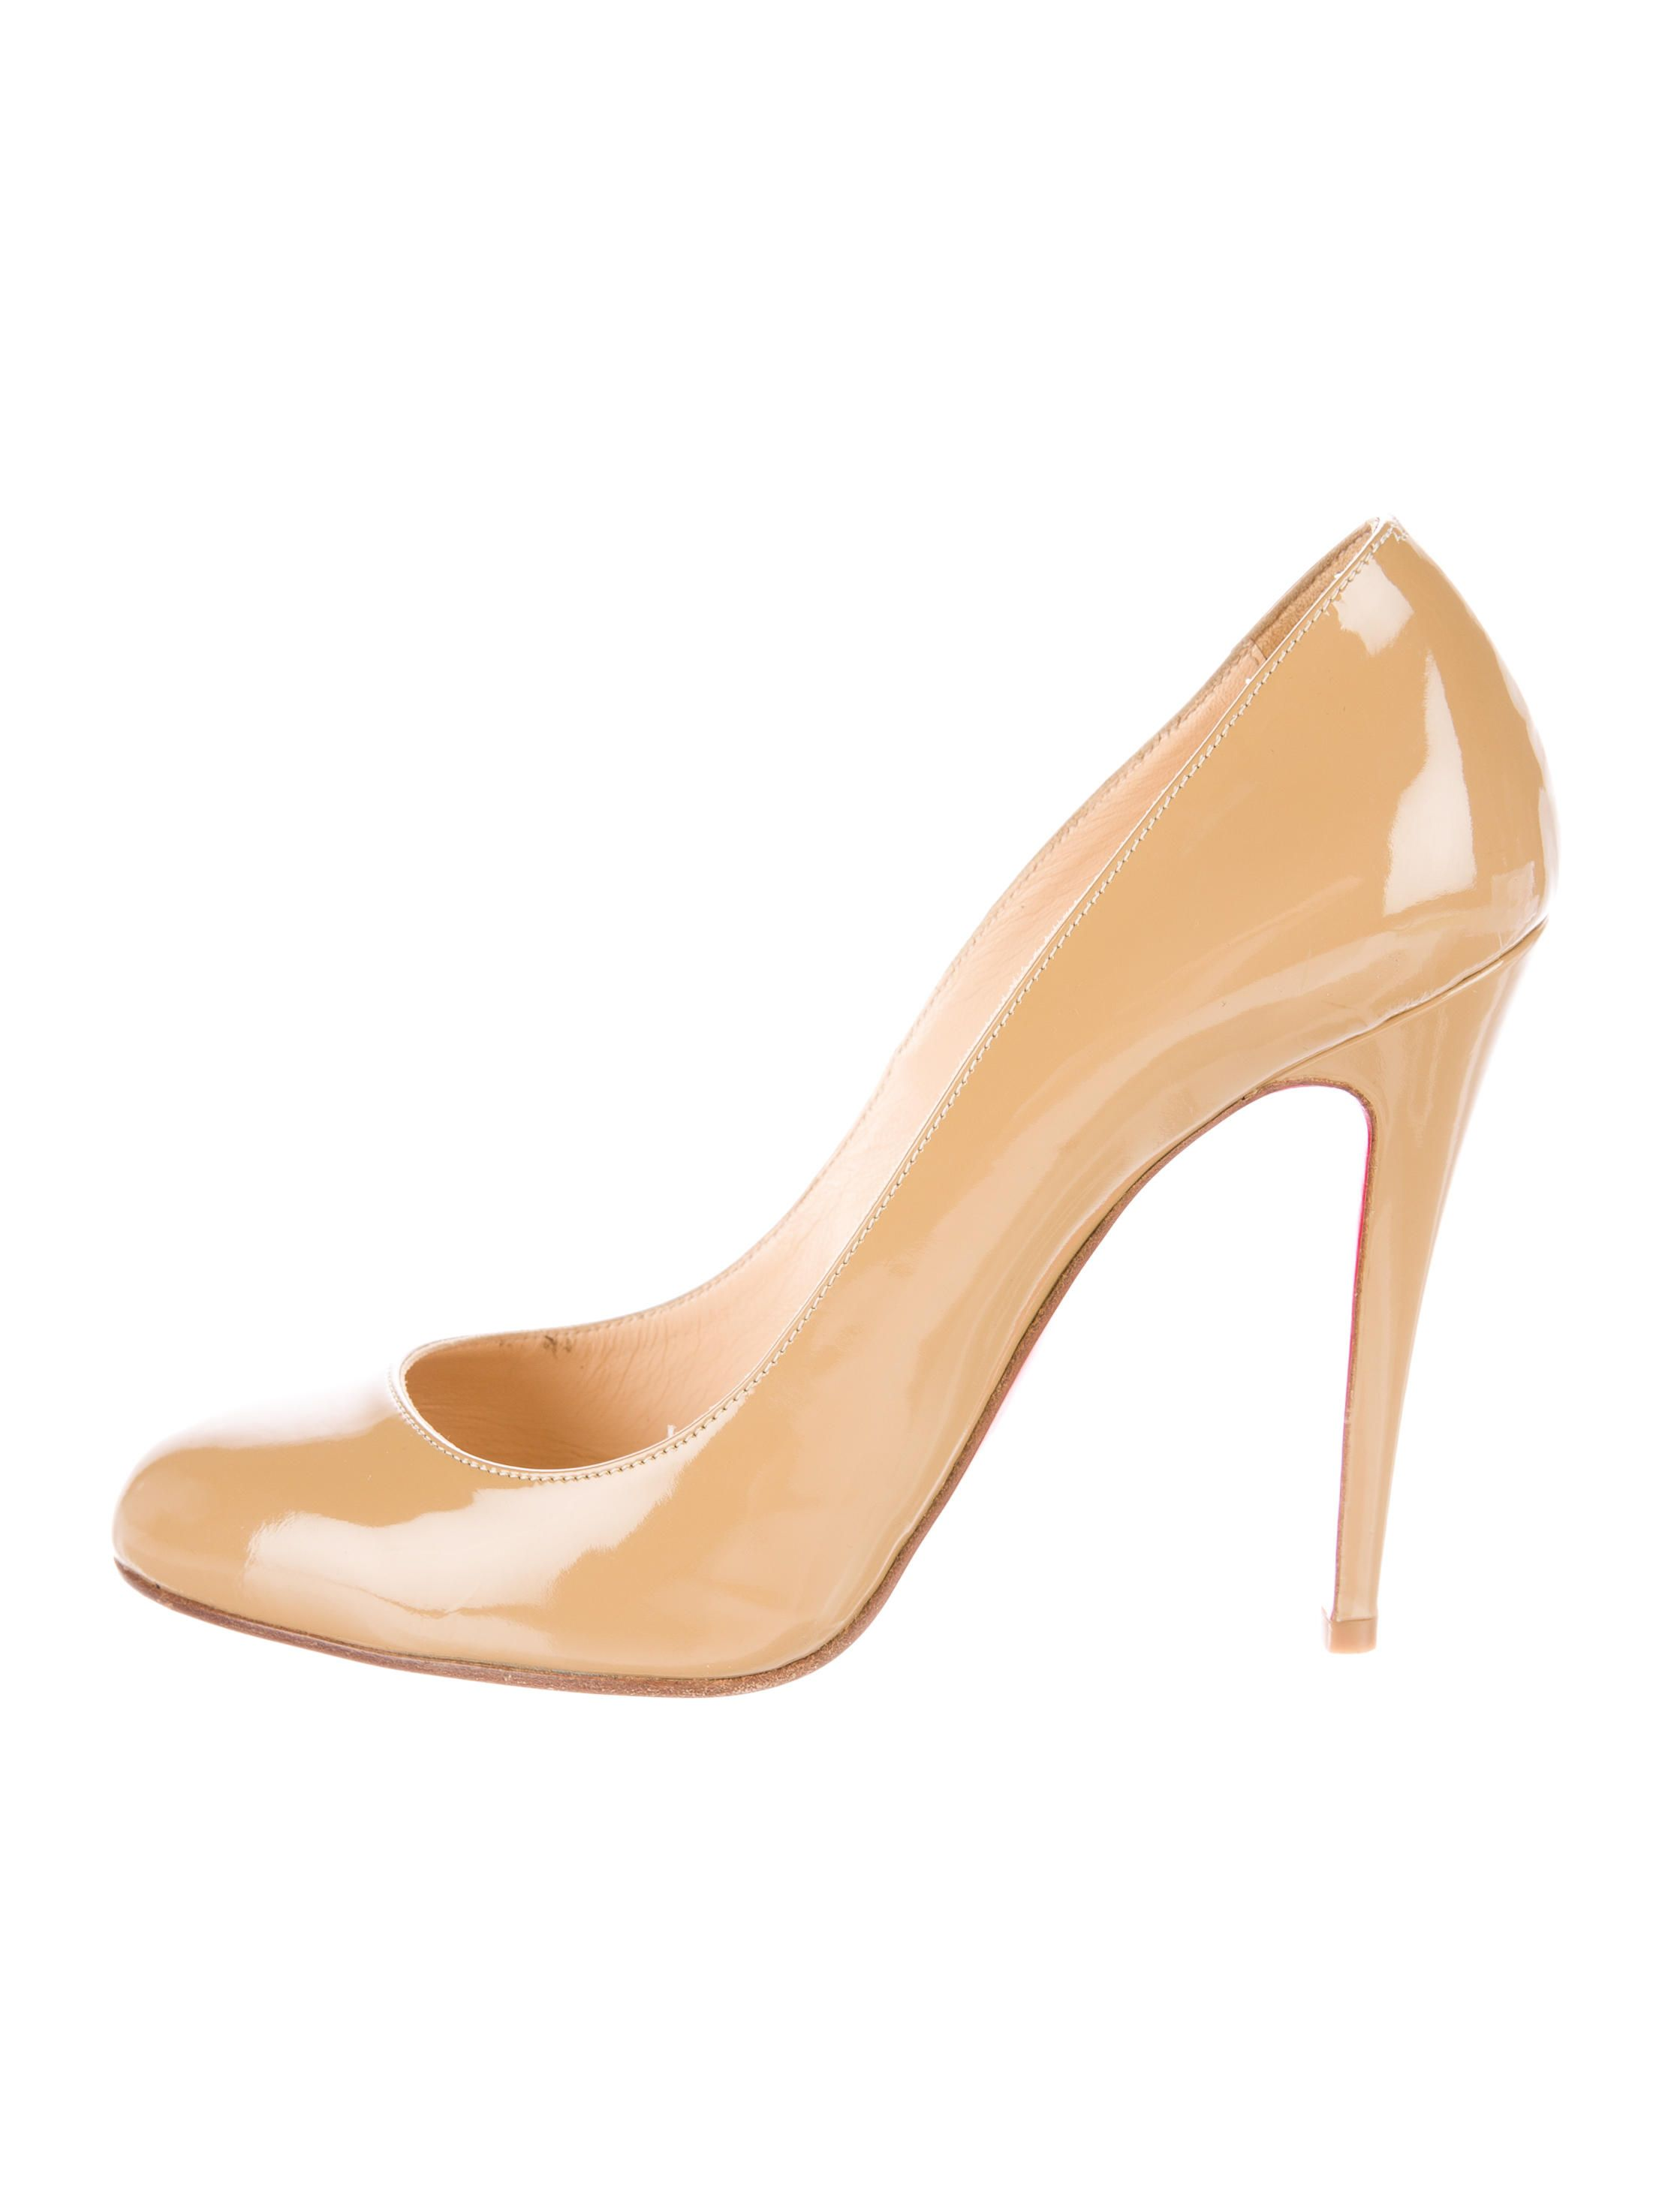 7ea2d311525d Tan patent leather Christian Louboutin round-toe Simple pumps with tonal  stitching and covered heels